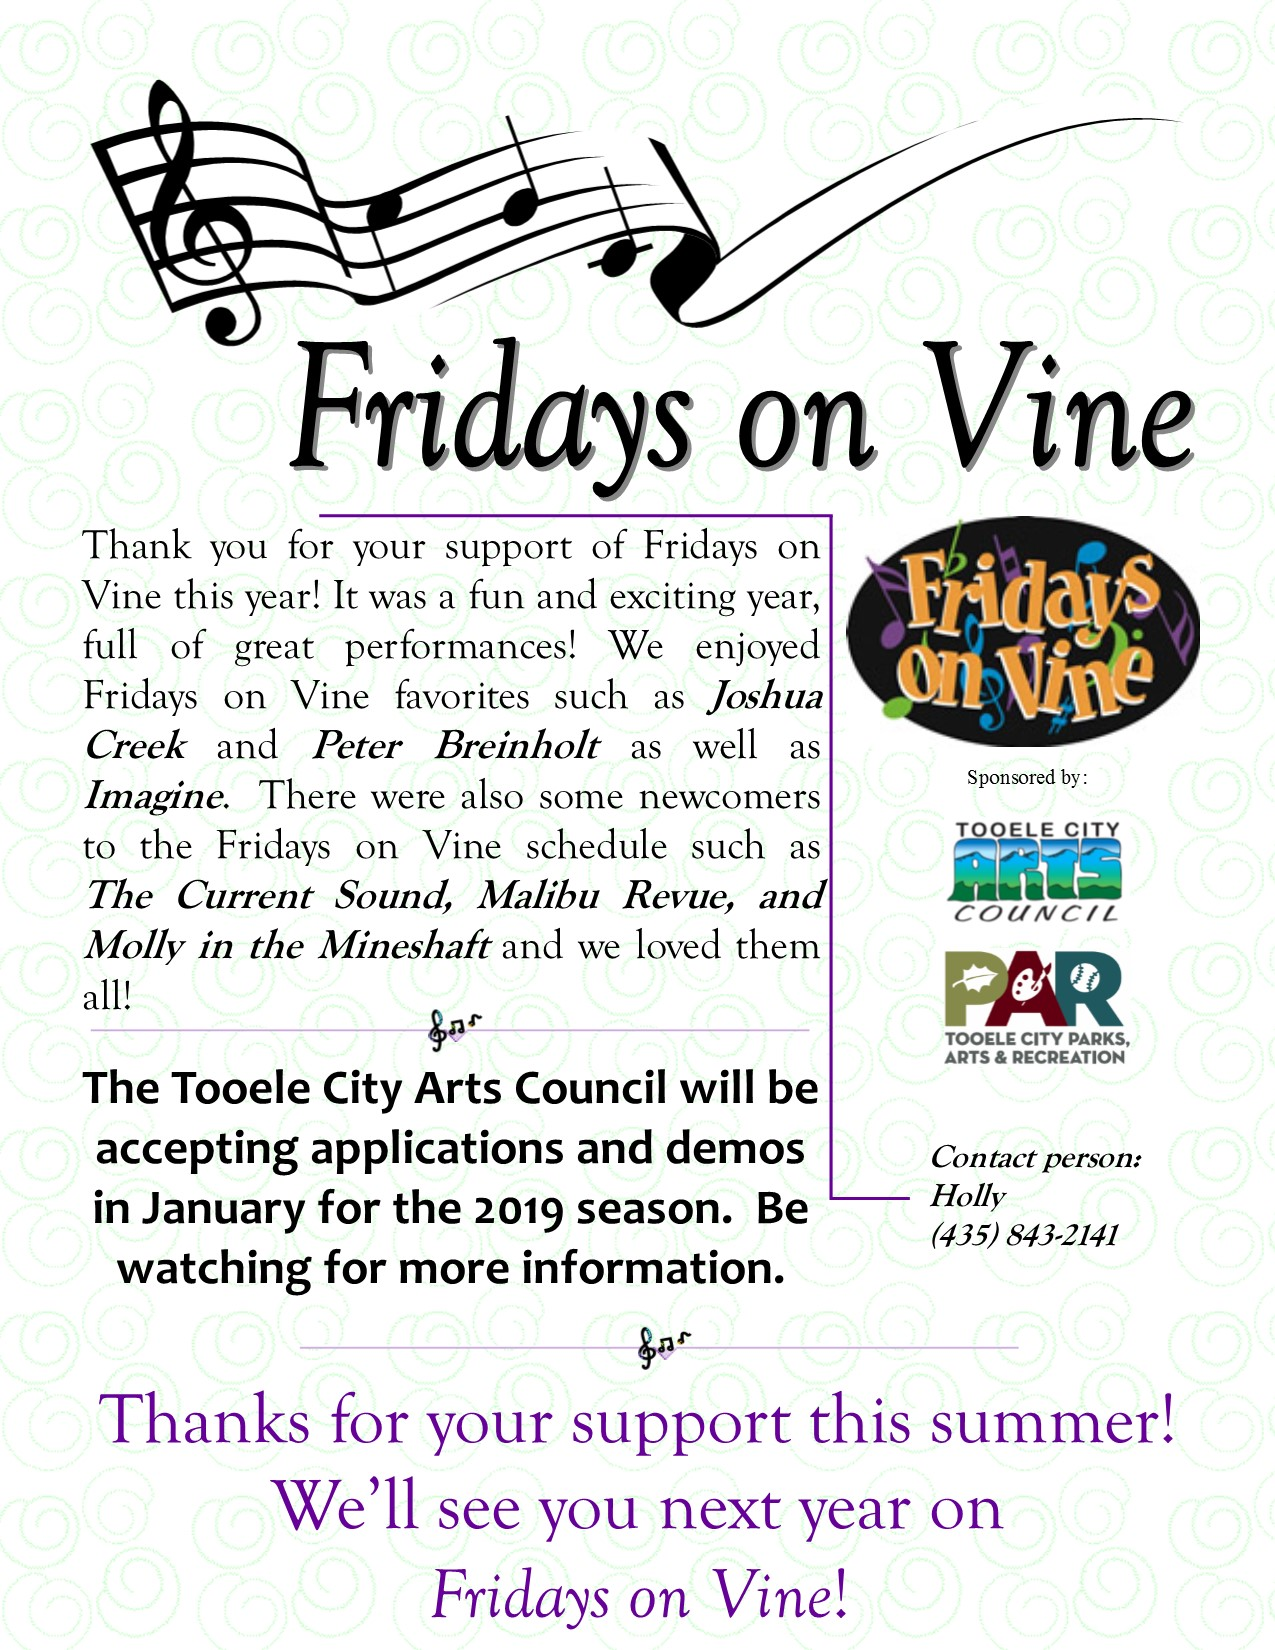 Thank You For Supporting Fridays on Vine